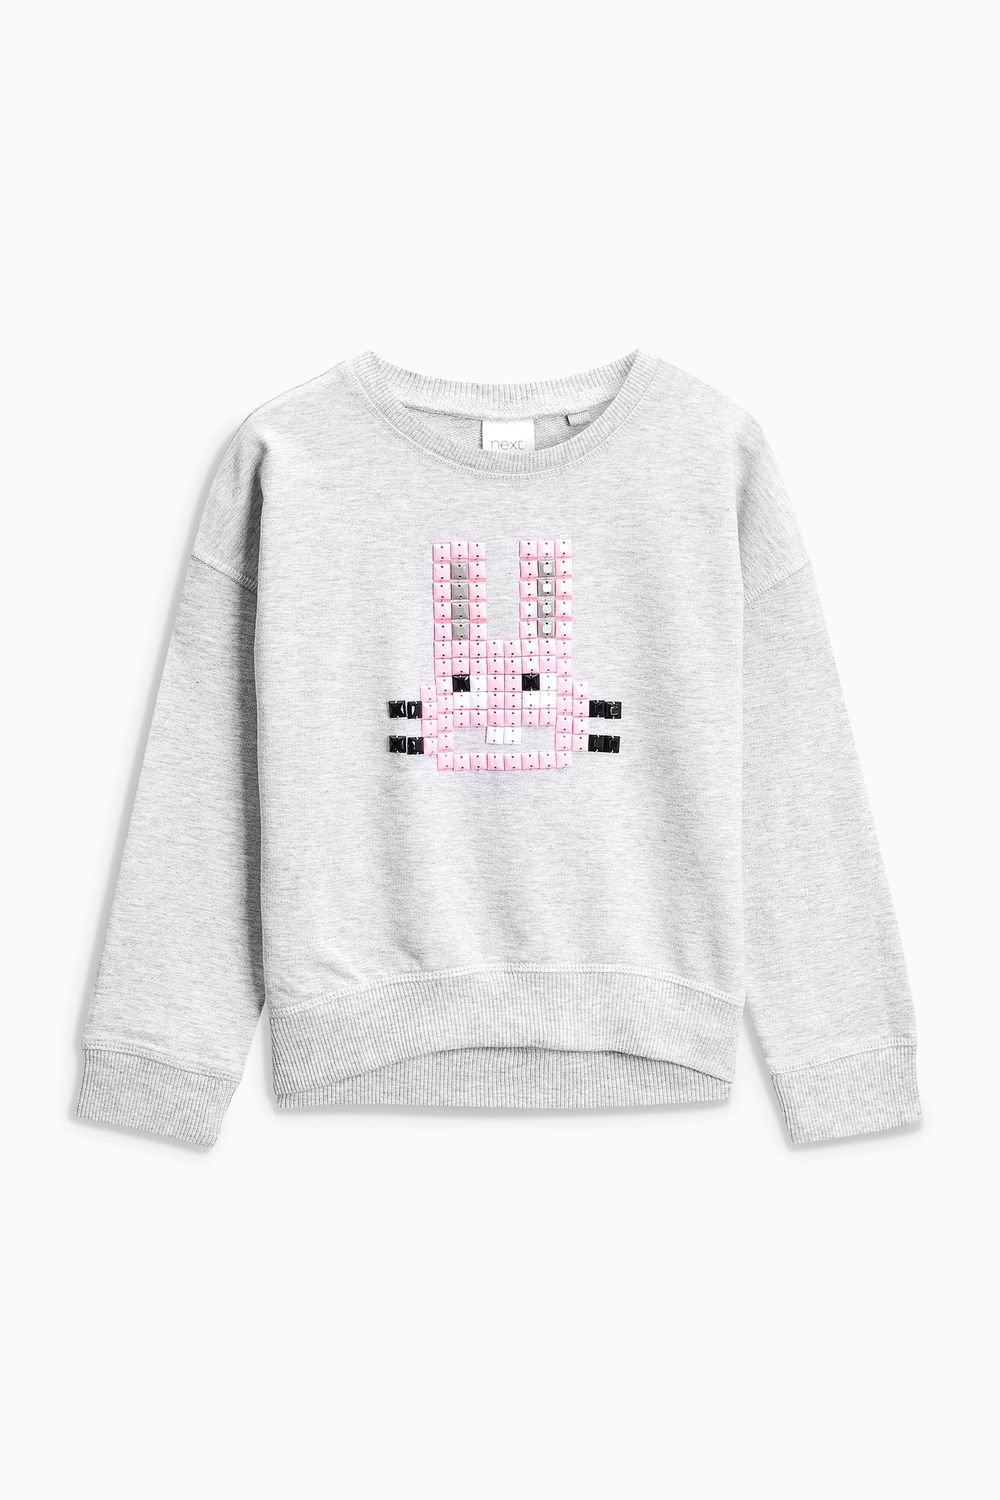 022dcf789 Next Bunny Bead Sweater (3-16yrs) Online